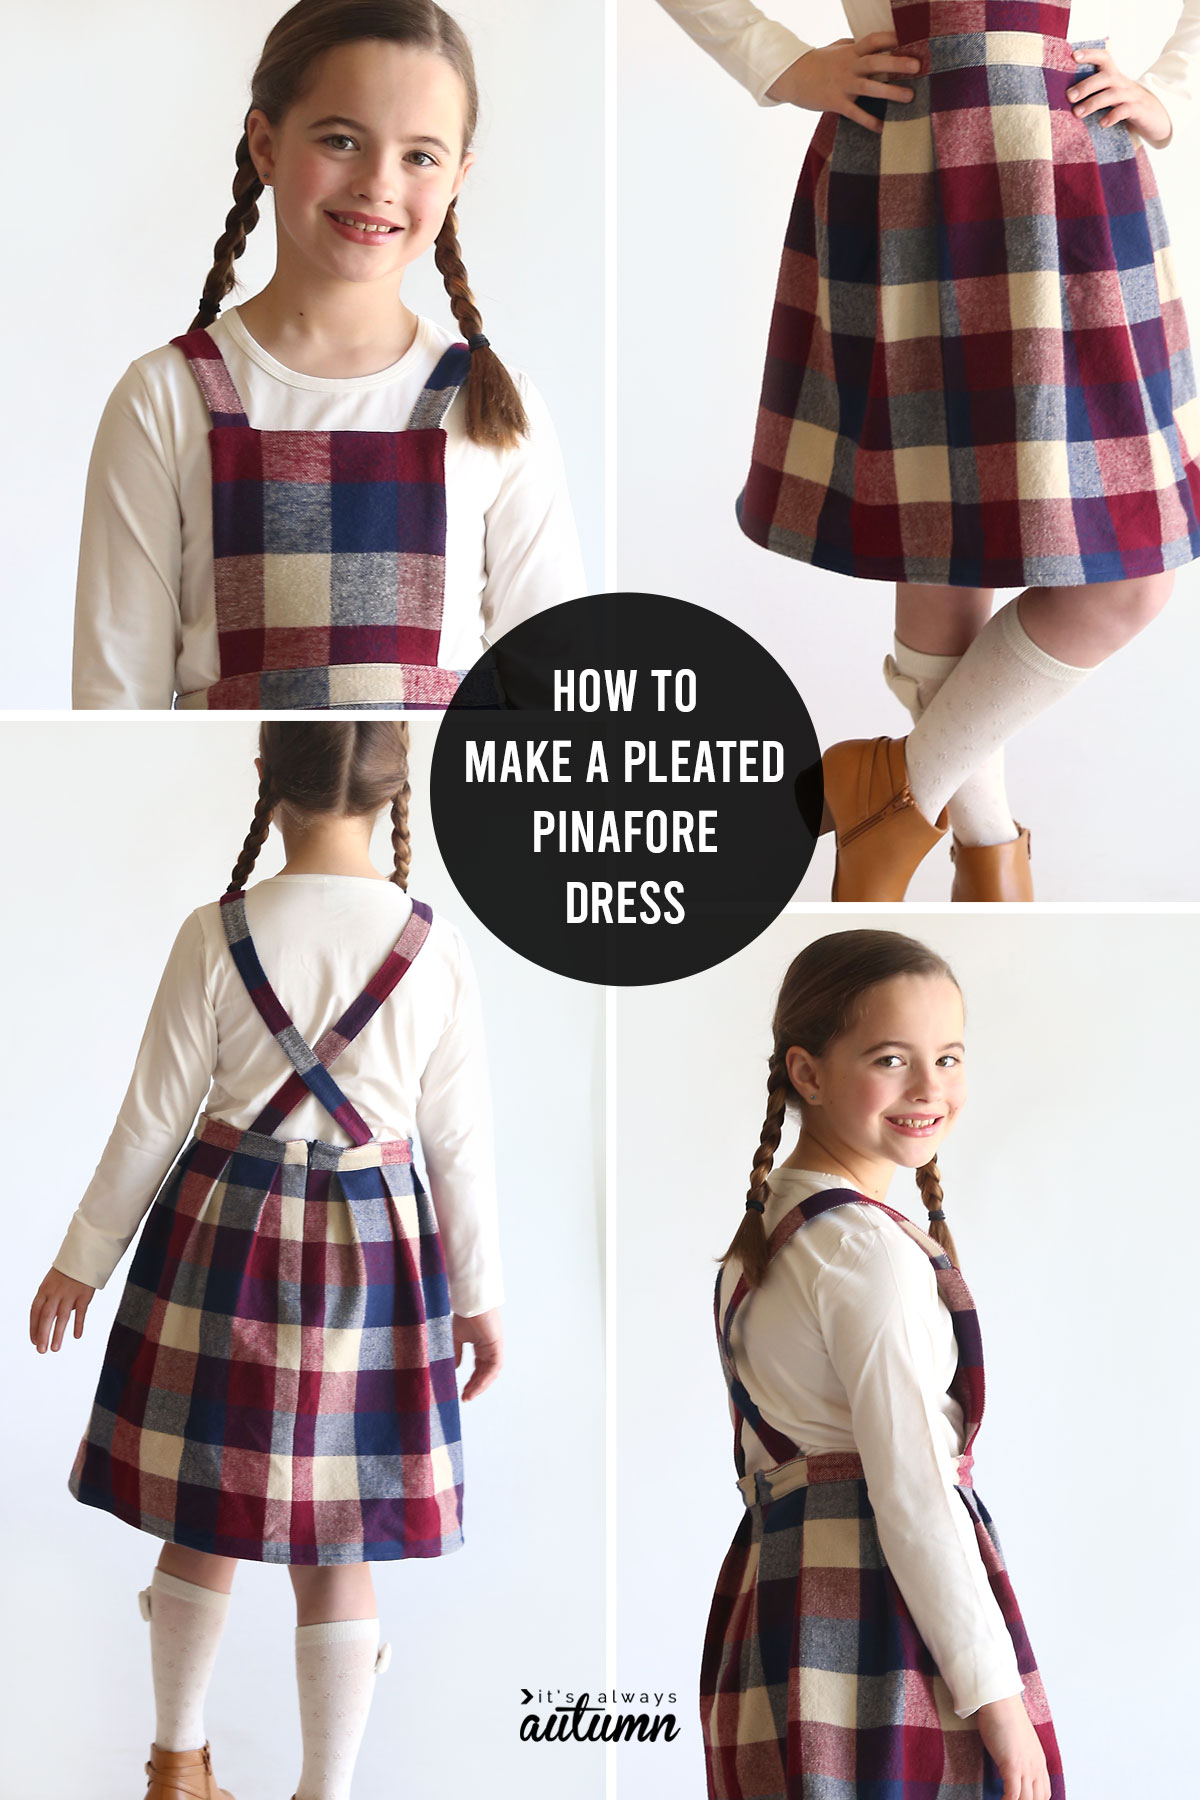 Learn how to create your own pinafore dress pattern and make a pinafore dress in any size!